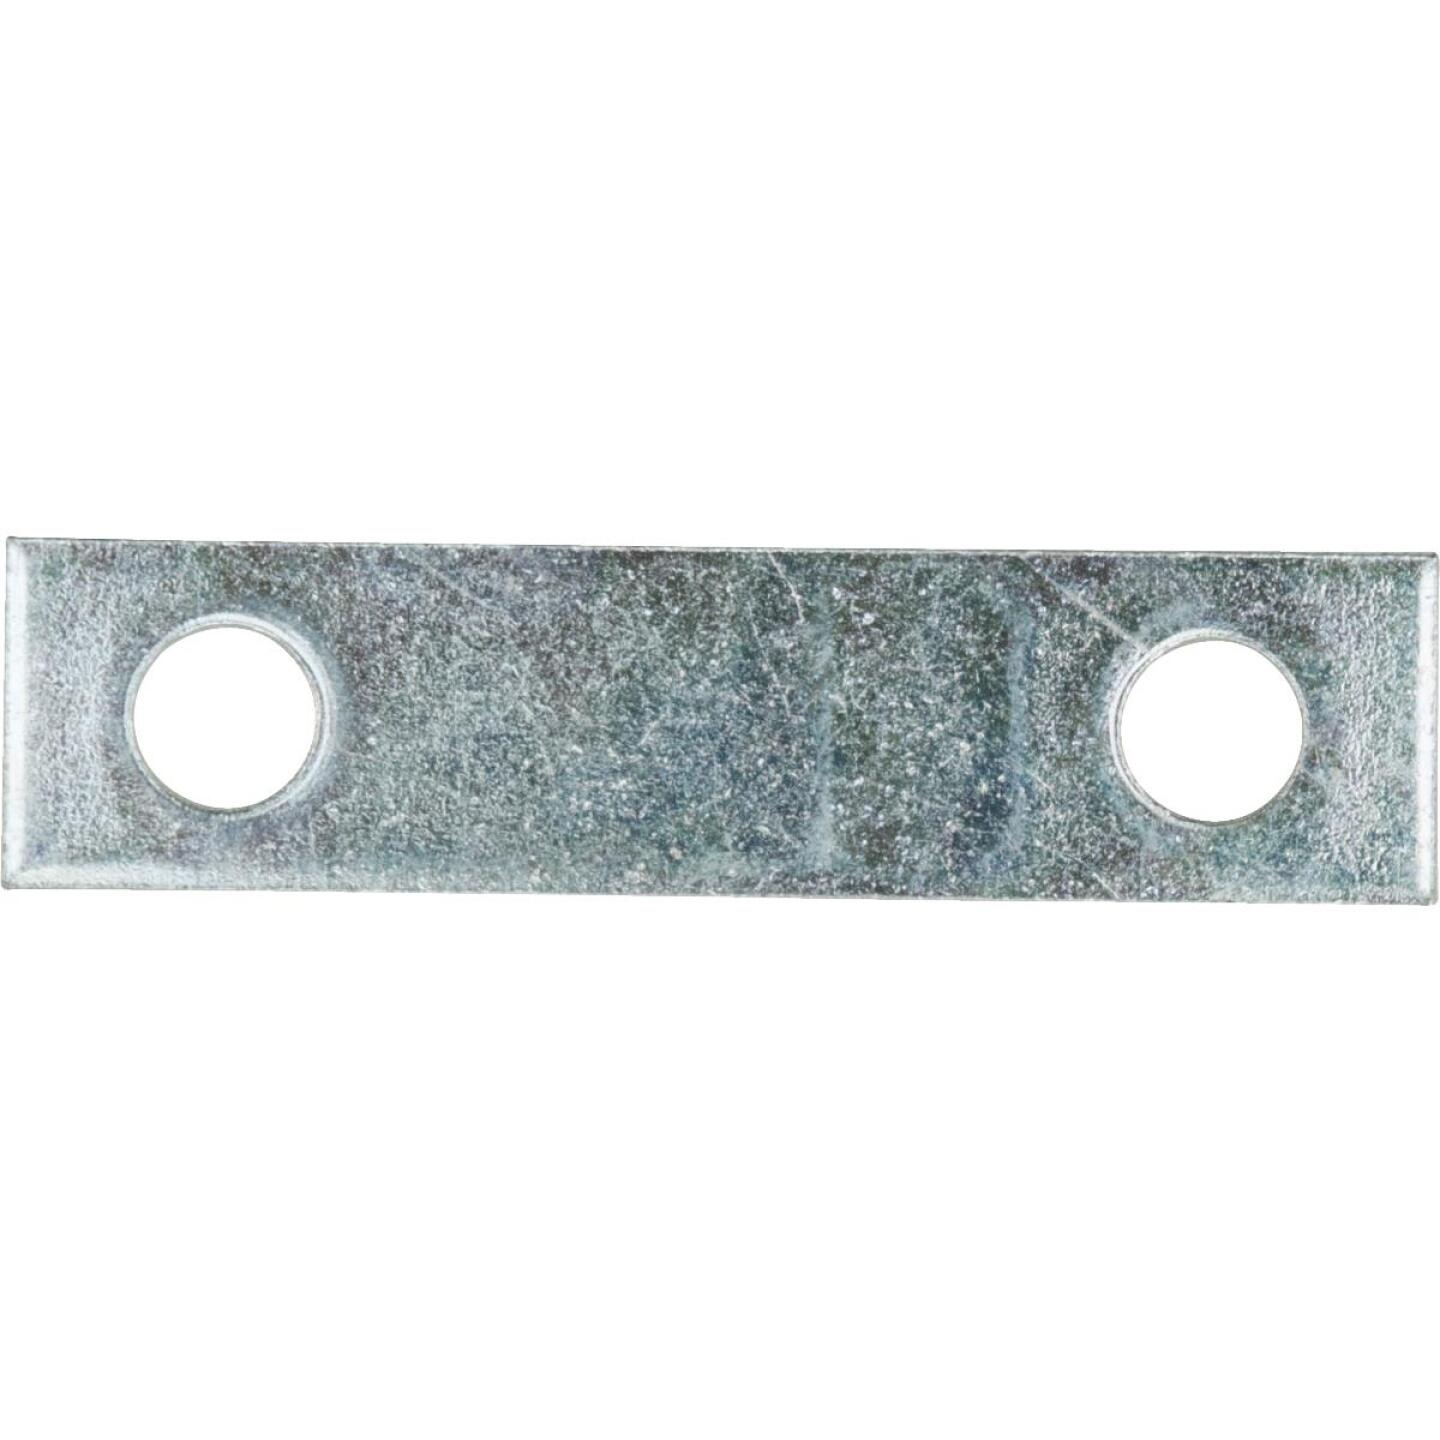 National Catalog 118 2 In. x 1/2 In. Zinc Steel Mending Brace Image 1